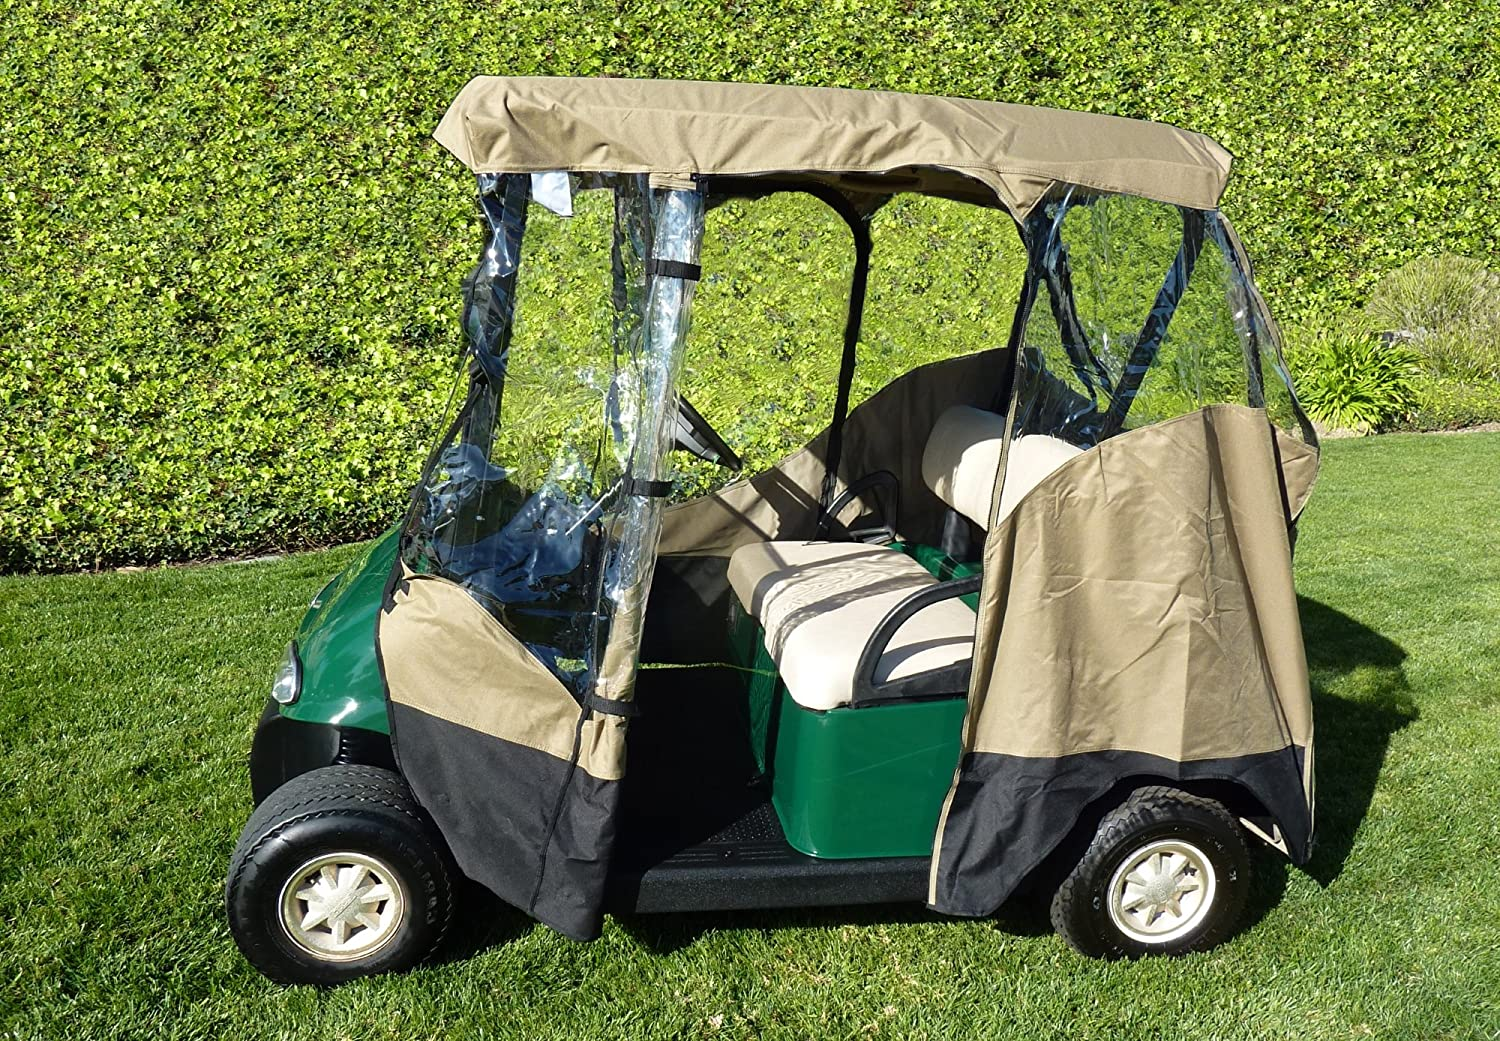 Amazon.com: 3 cara drivable Carrito de golf 2 plazas ...